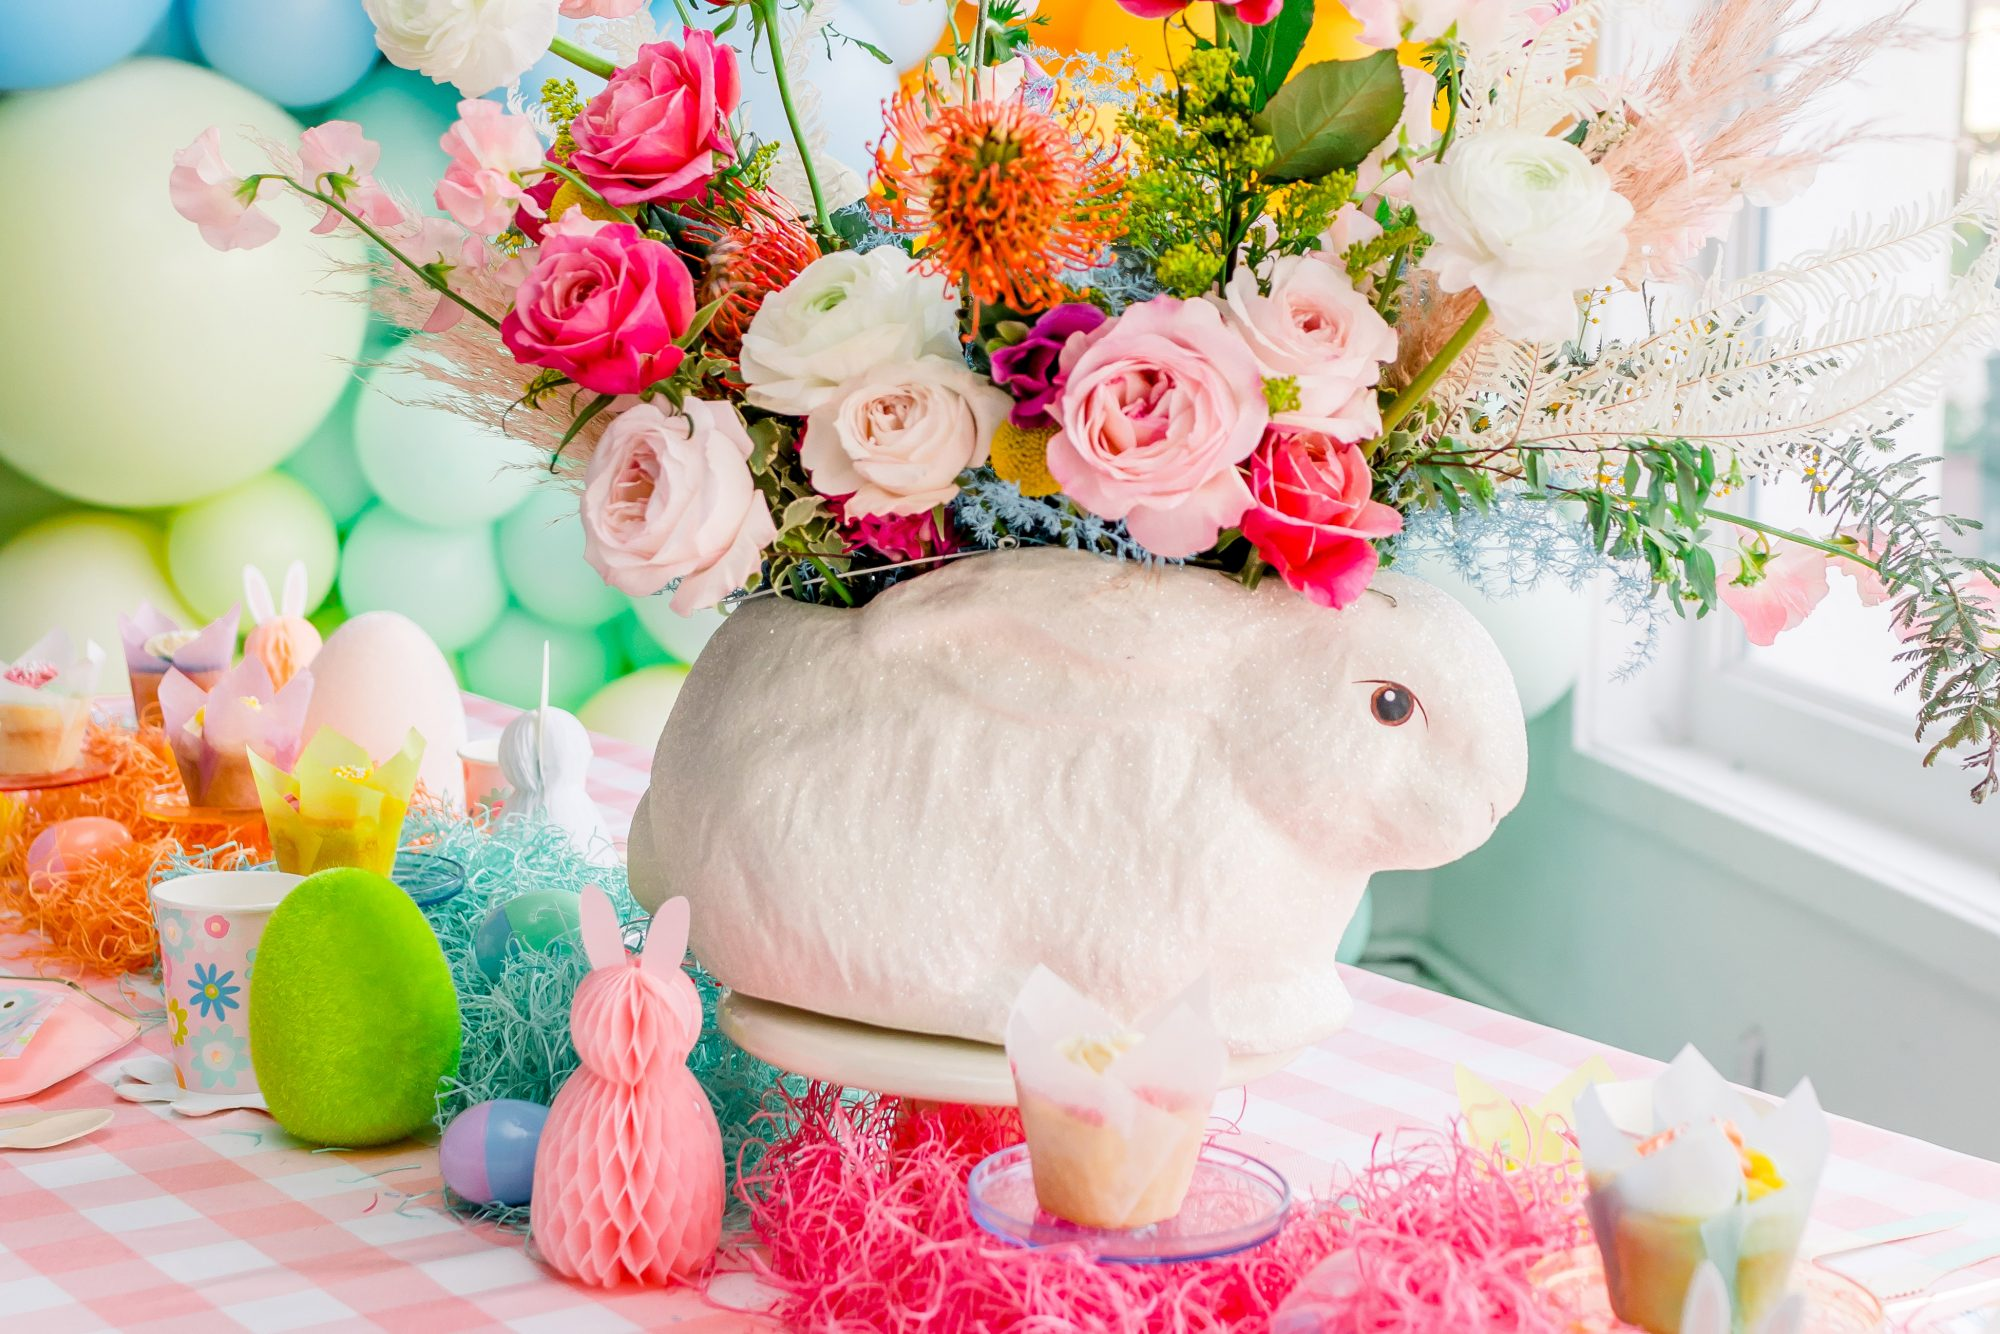 ceramic easter bunny vase on table